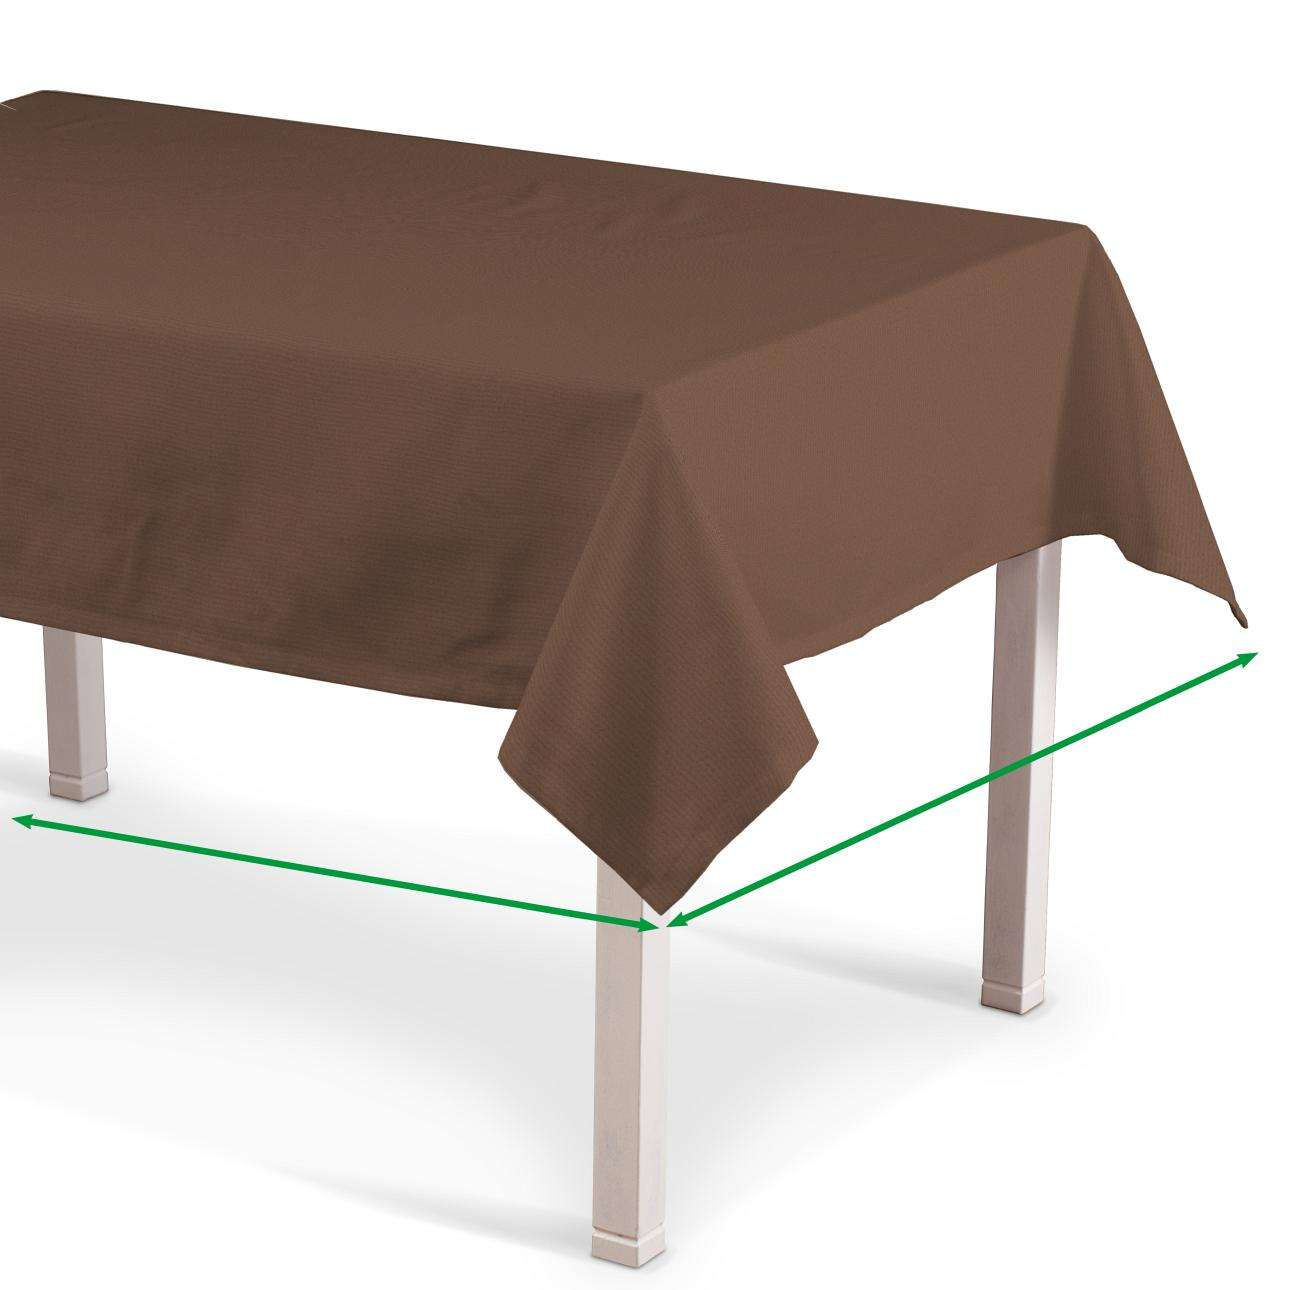 Rectangular tablecloth in collection Milano, fabric: 150-21